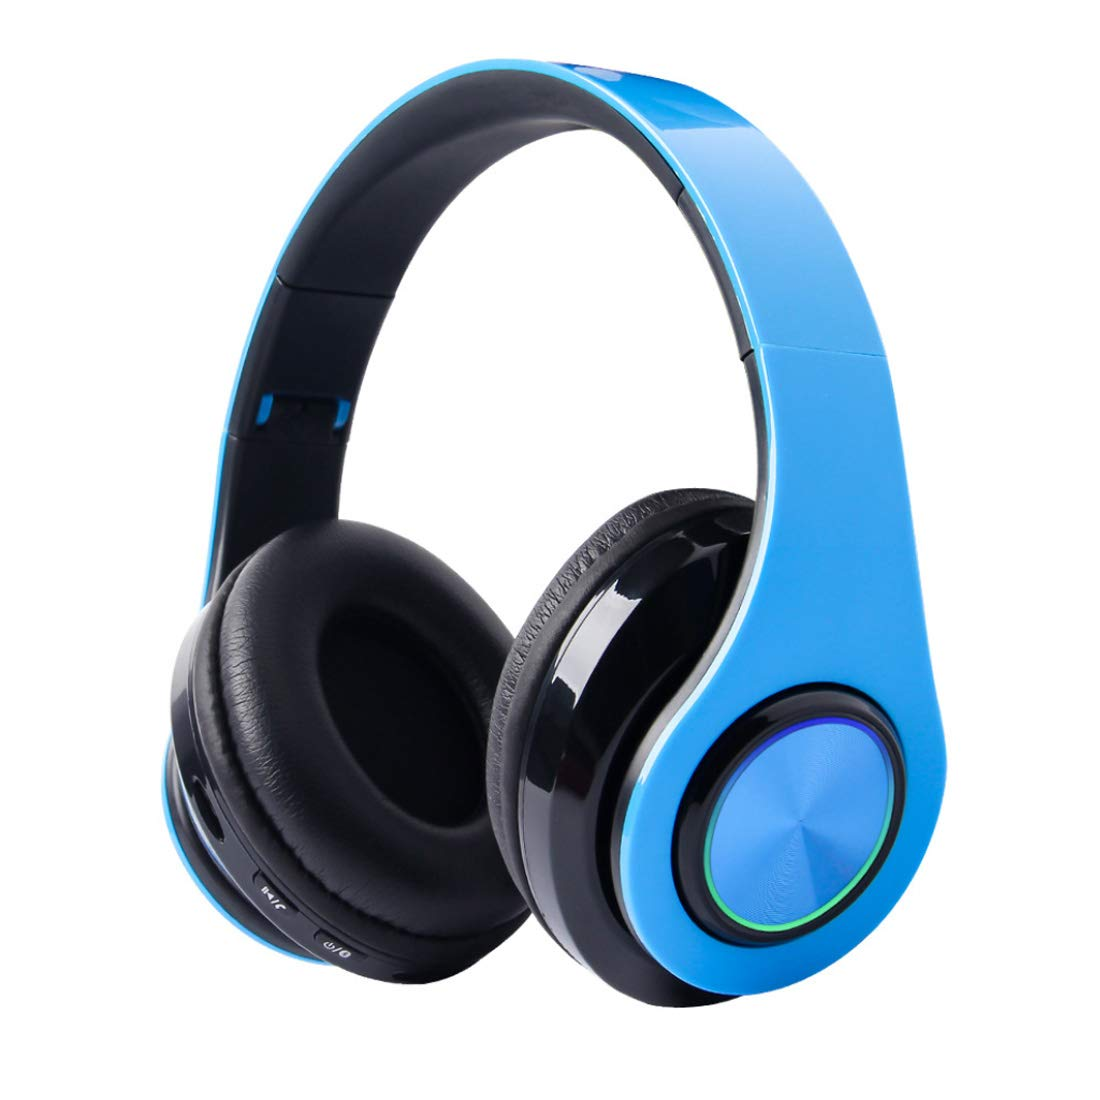 Bluetooth Headphones Over Ear, Deep Bass Hi-Fi Stereo Wireless Headset, Foldable, Comfortable Protein Earpads, w/Built-in Mic for Travel Work/Wired Mode PC/Cell Phones/TV - Blue